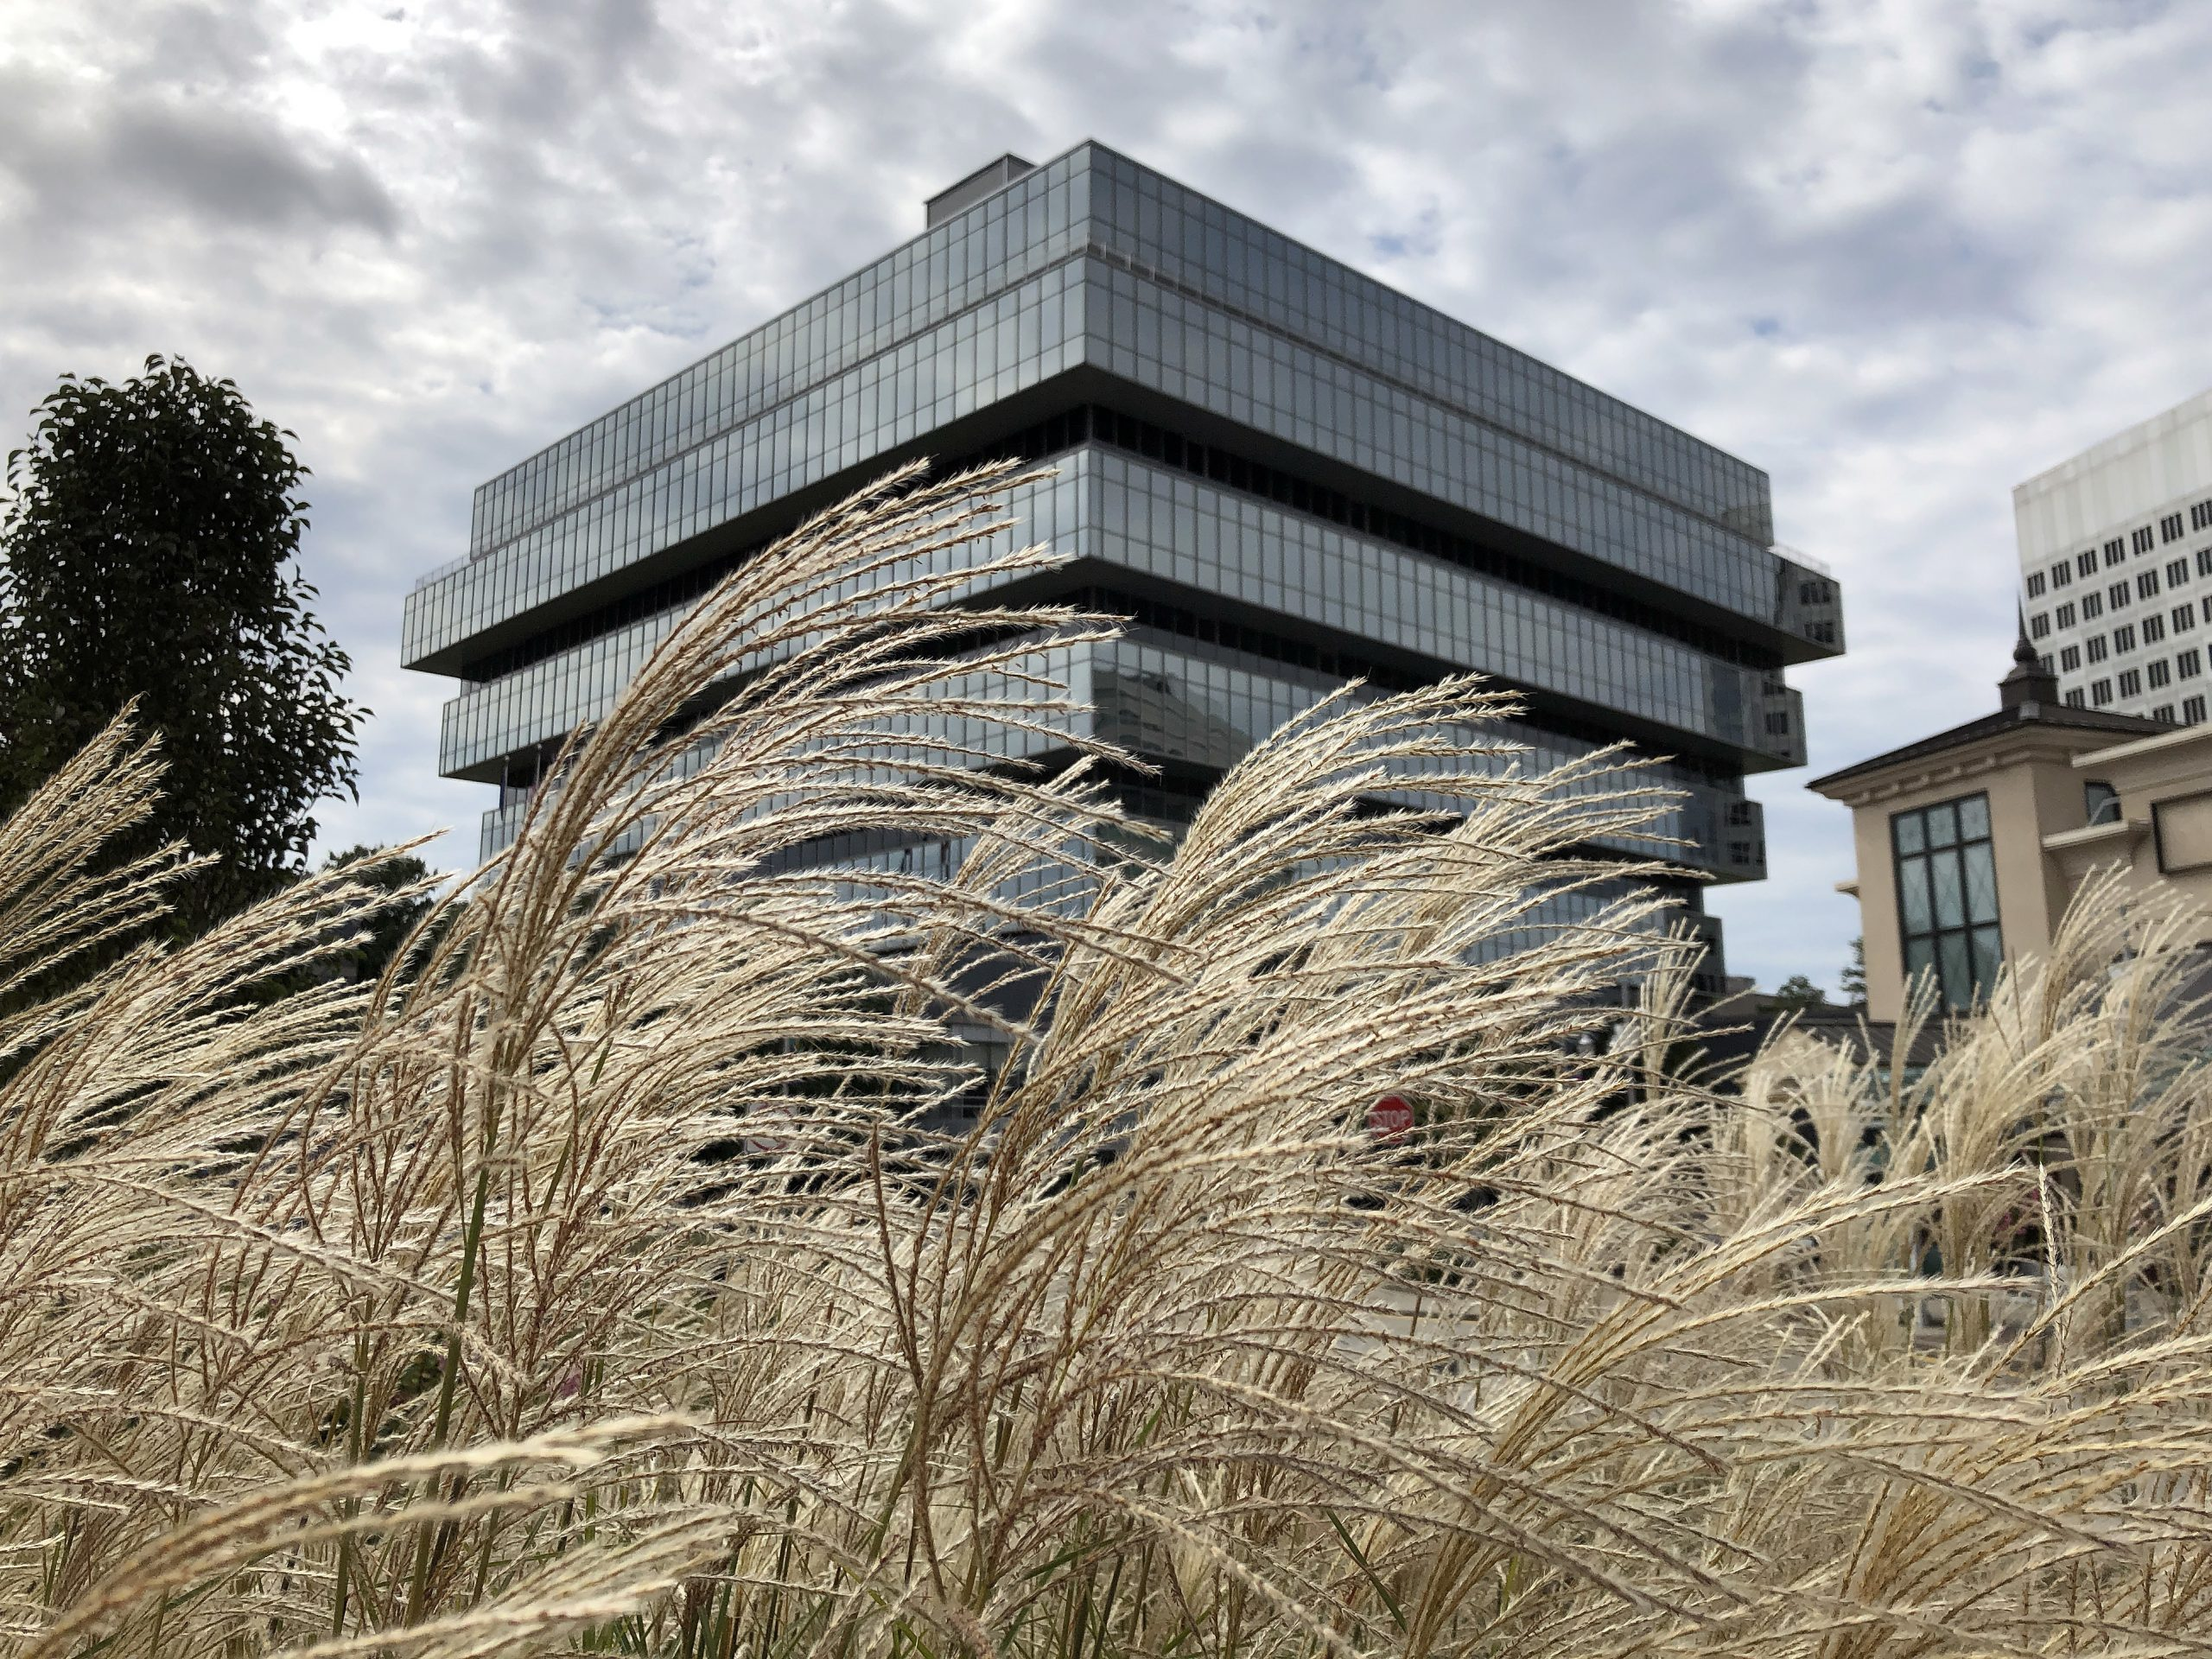 Purdue Pharma's headquarters in Stamford, Conn., seen earlier this month. The OxyContin manufacturer has filed for Chapter 11 bankruptcy, but some want the company's owners to face criminal charges over the opioid crisis.